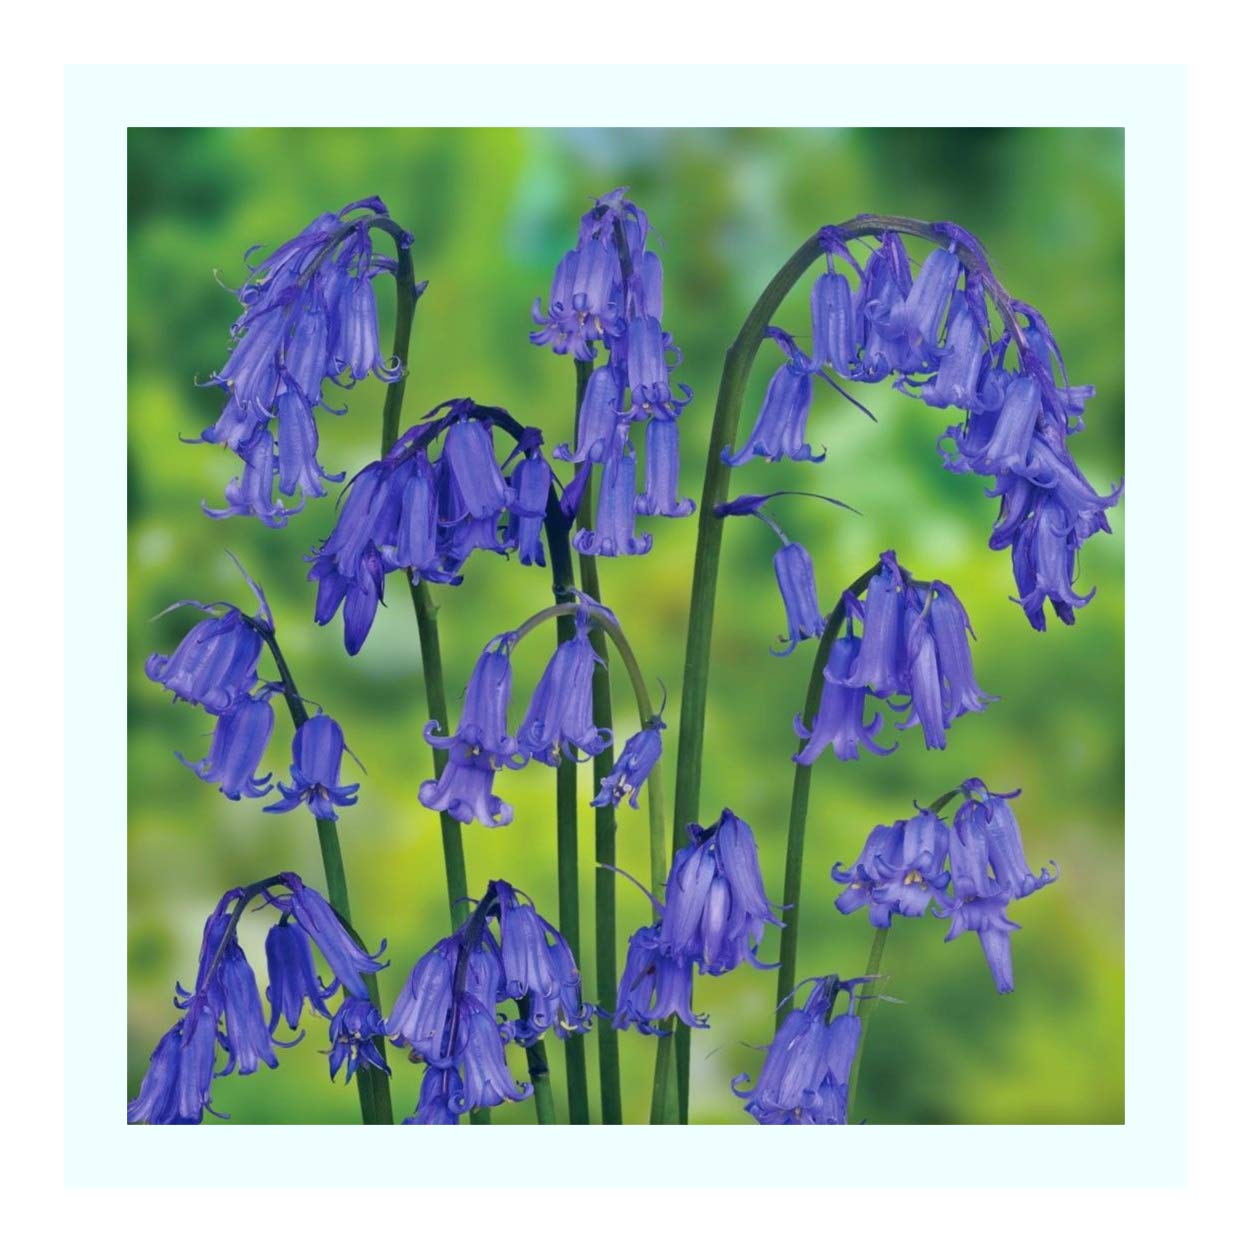 English Bluebell Seeds X APROX 1000 RIPE Fresh Seed Sold by PLUG PLANTS EXPRESS LIMITED leegillard